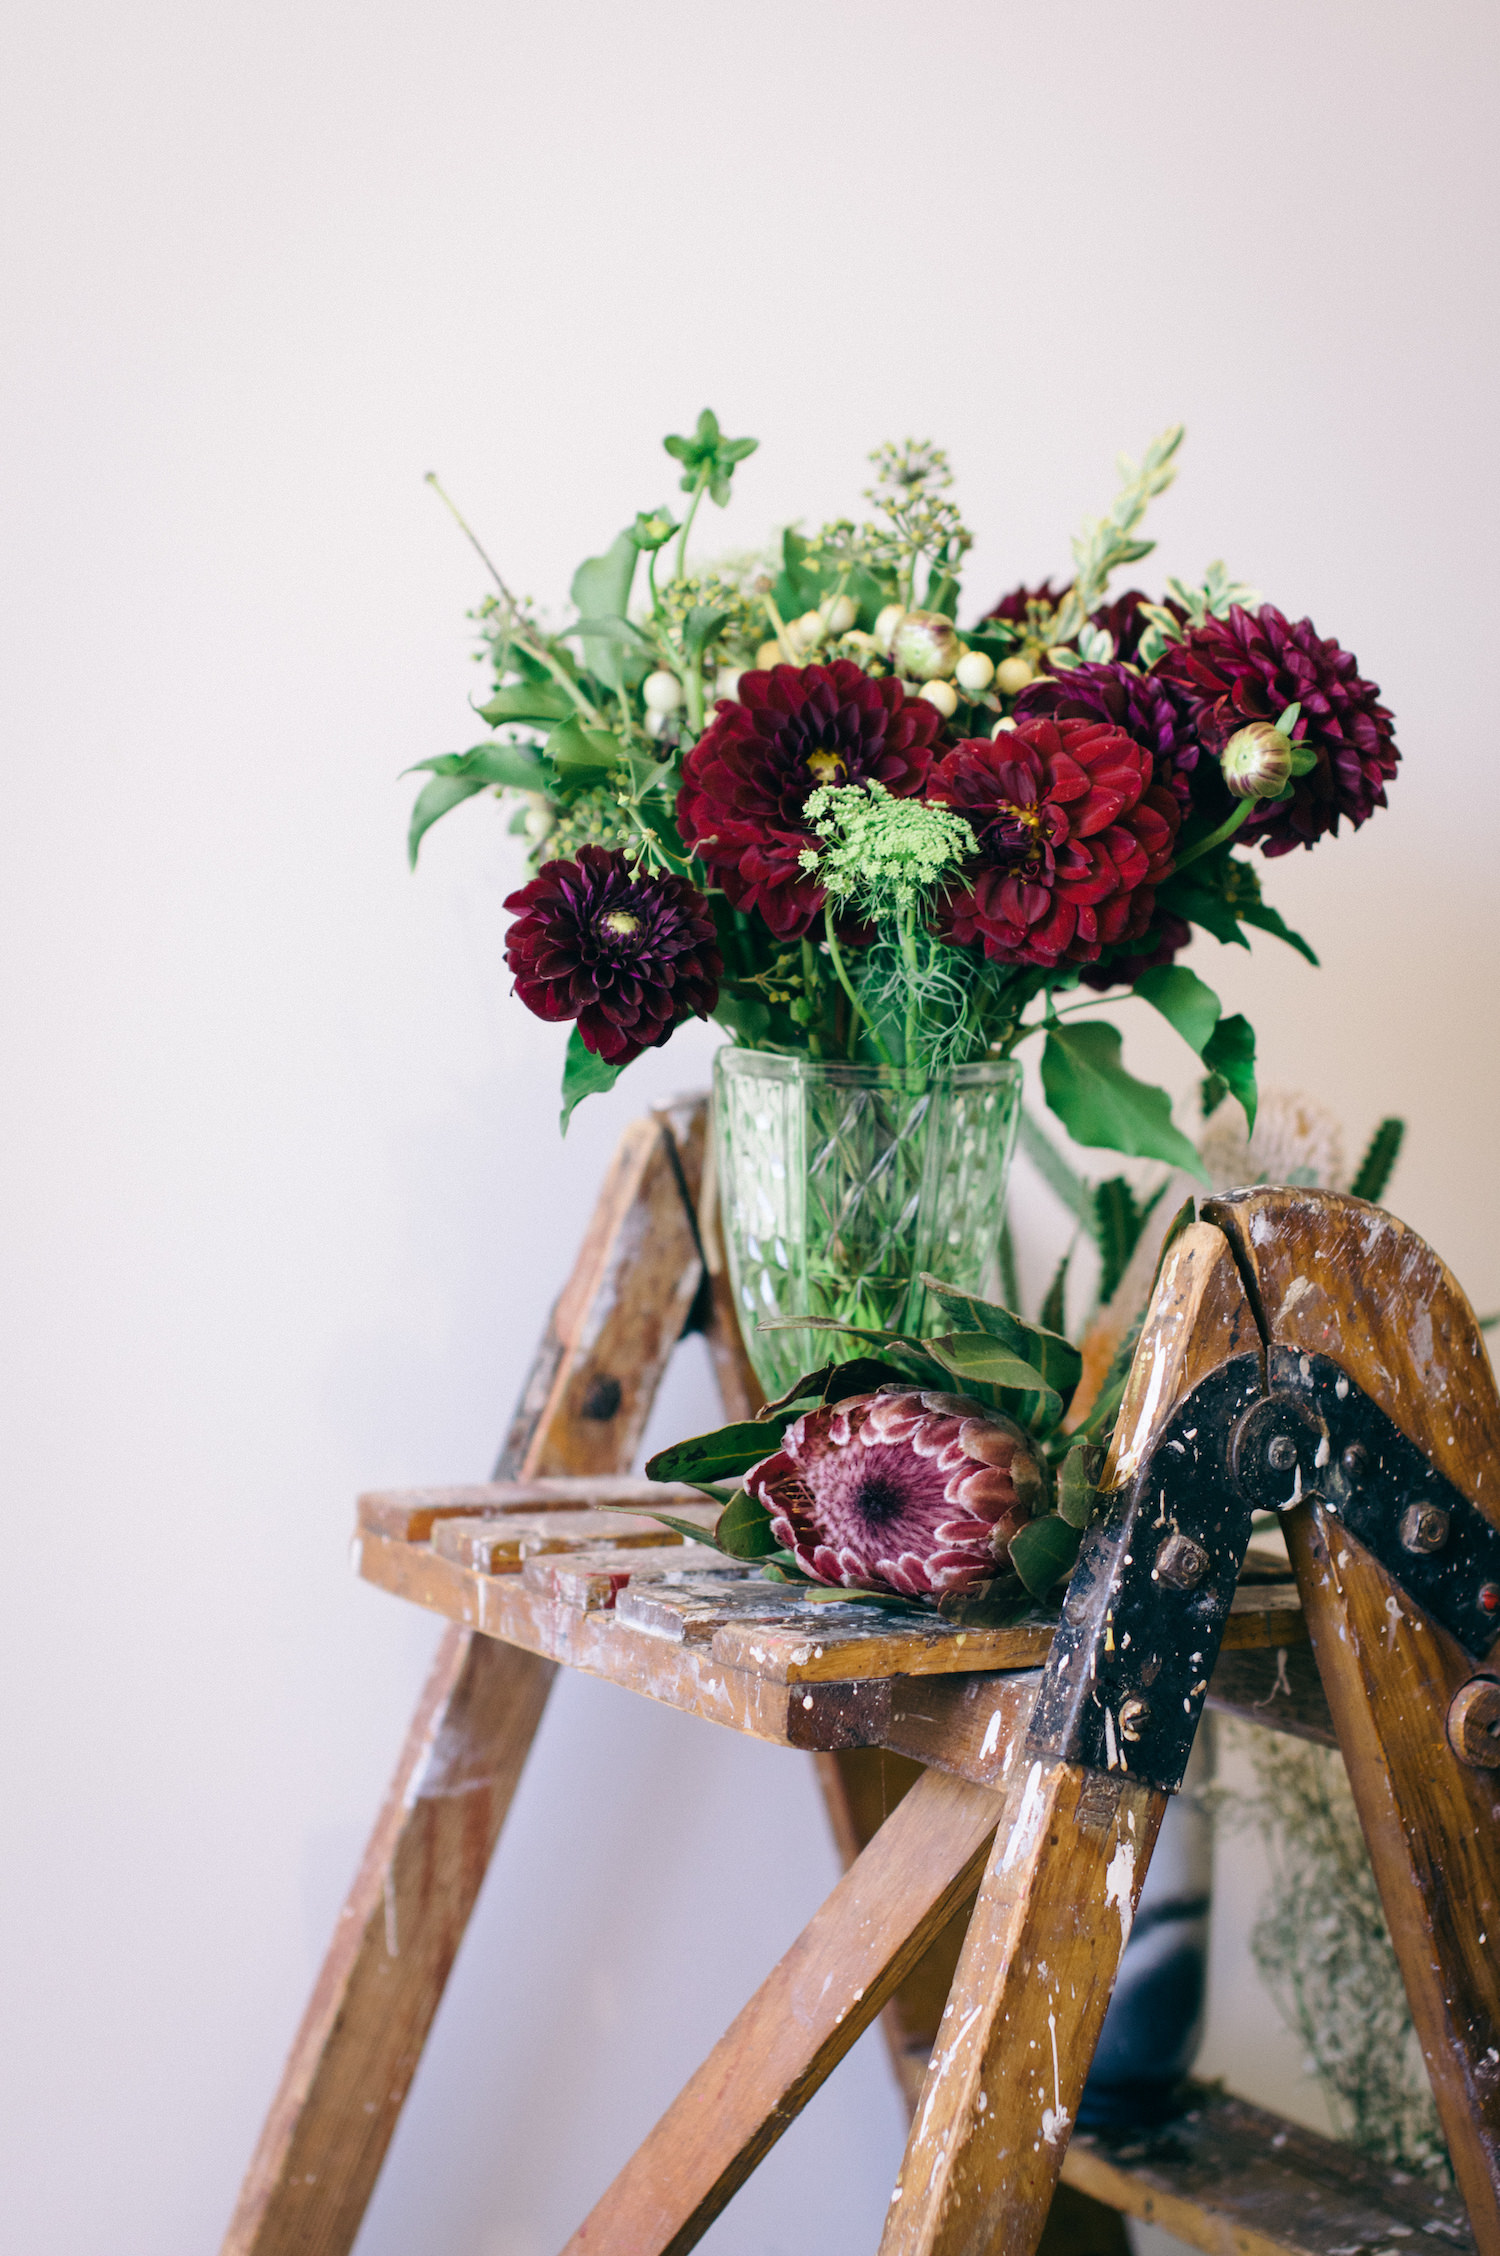 Creative Business Photography Ashleigh Perrella Artist Florist 13